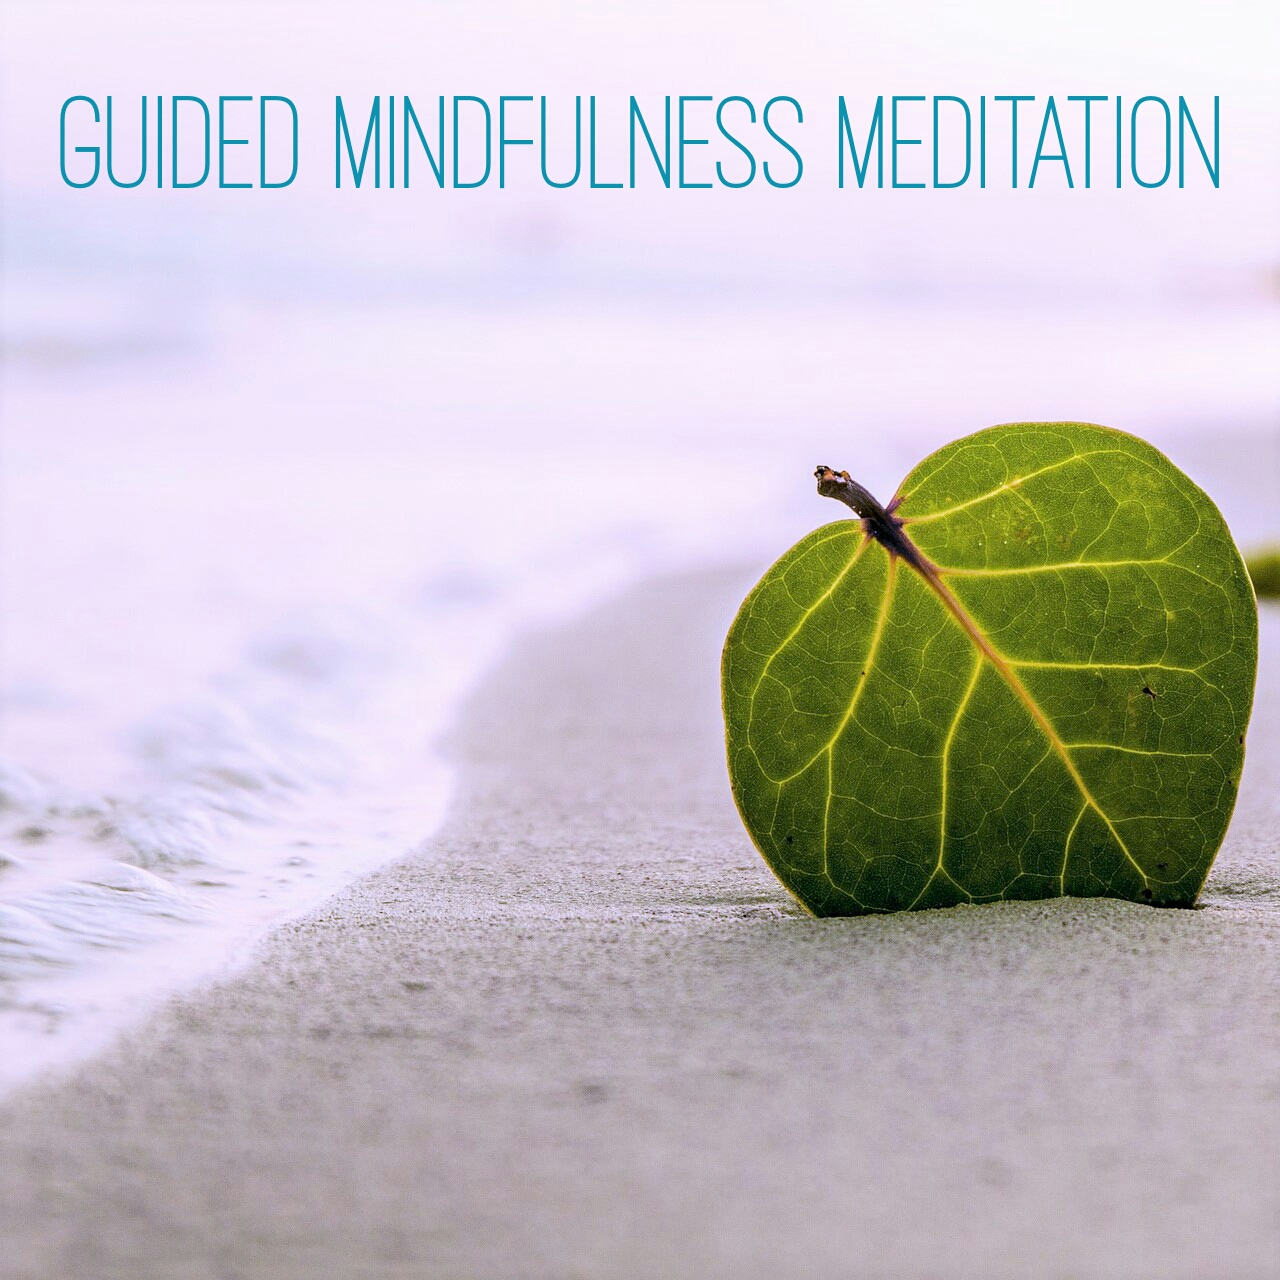 Guided Mindfulness Meditation 10 minute Mp3 Download | Music2relax com